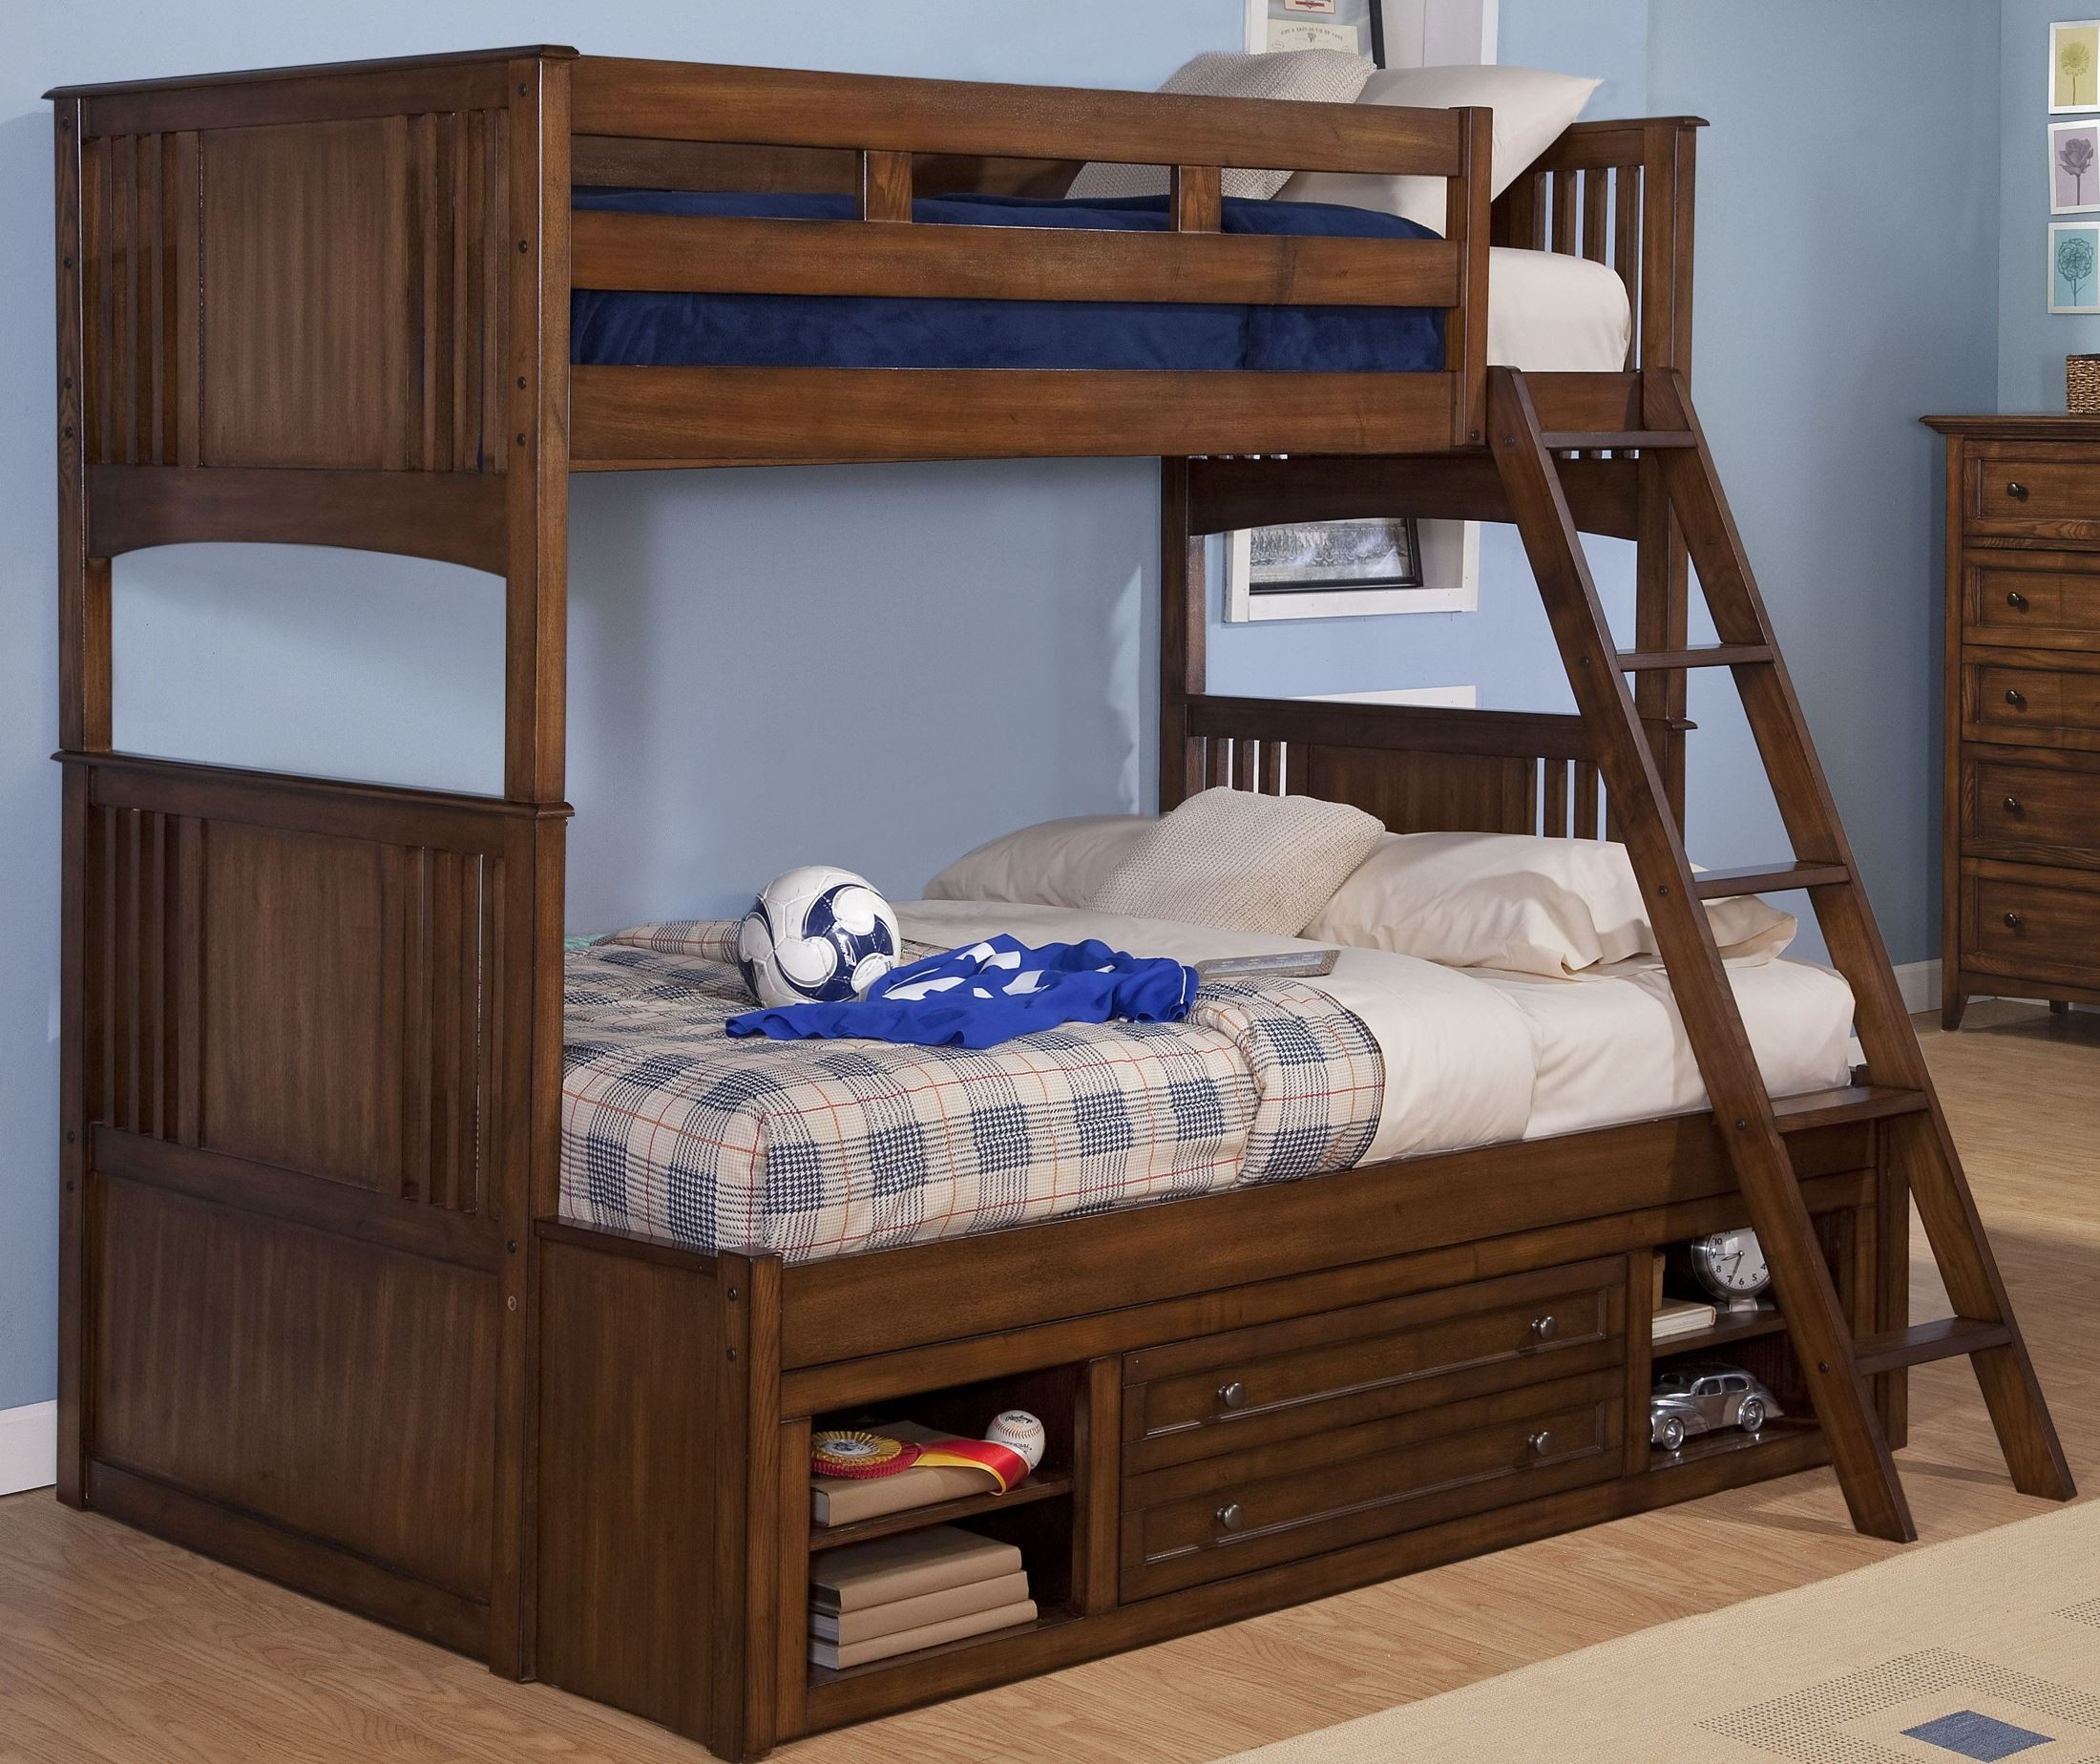 Logan Spice Youth Bunk Bedroom Set From New Classics (05